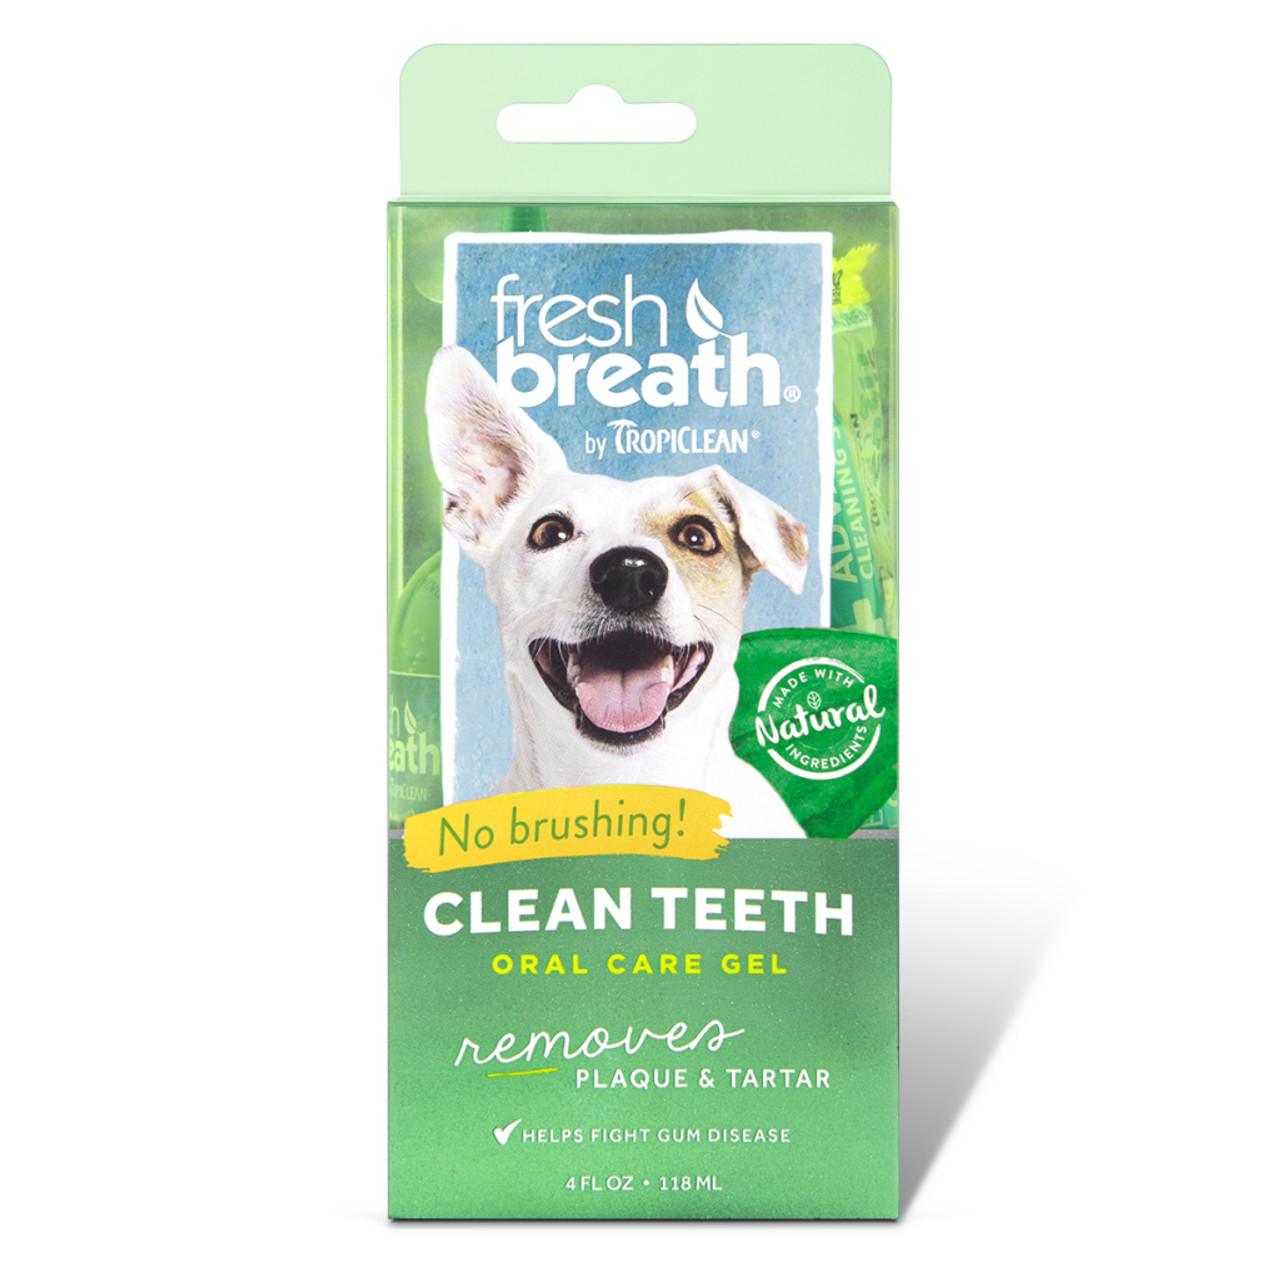 Fresh Breath Oral Care Gel for Dogs